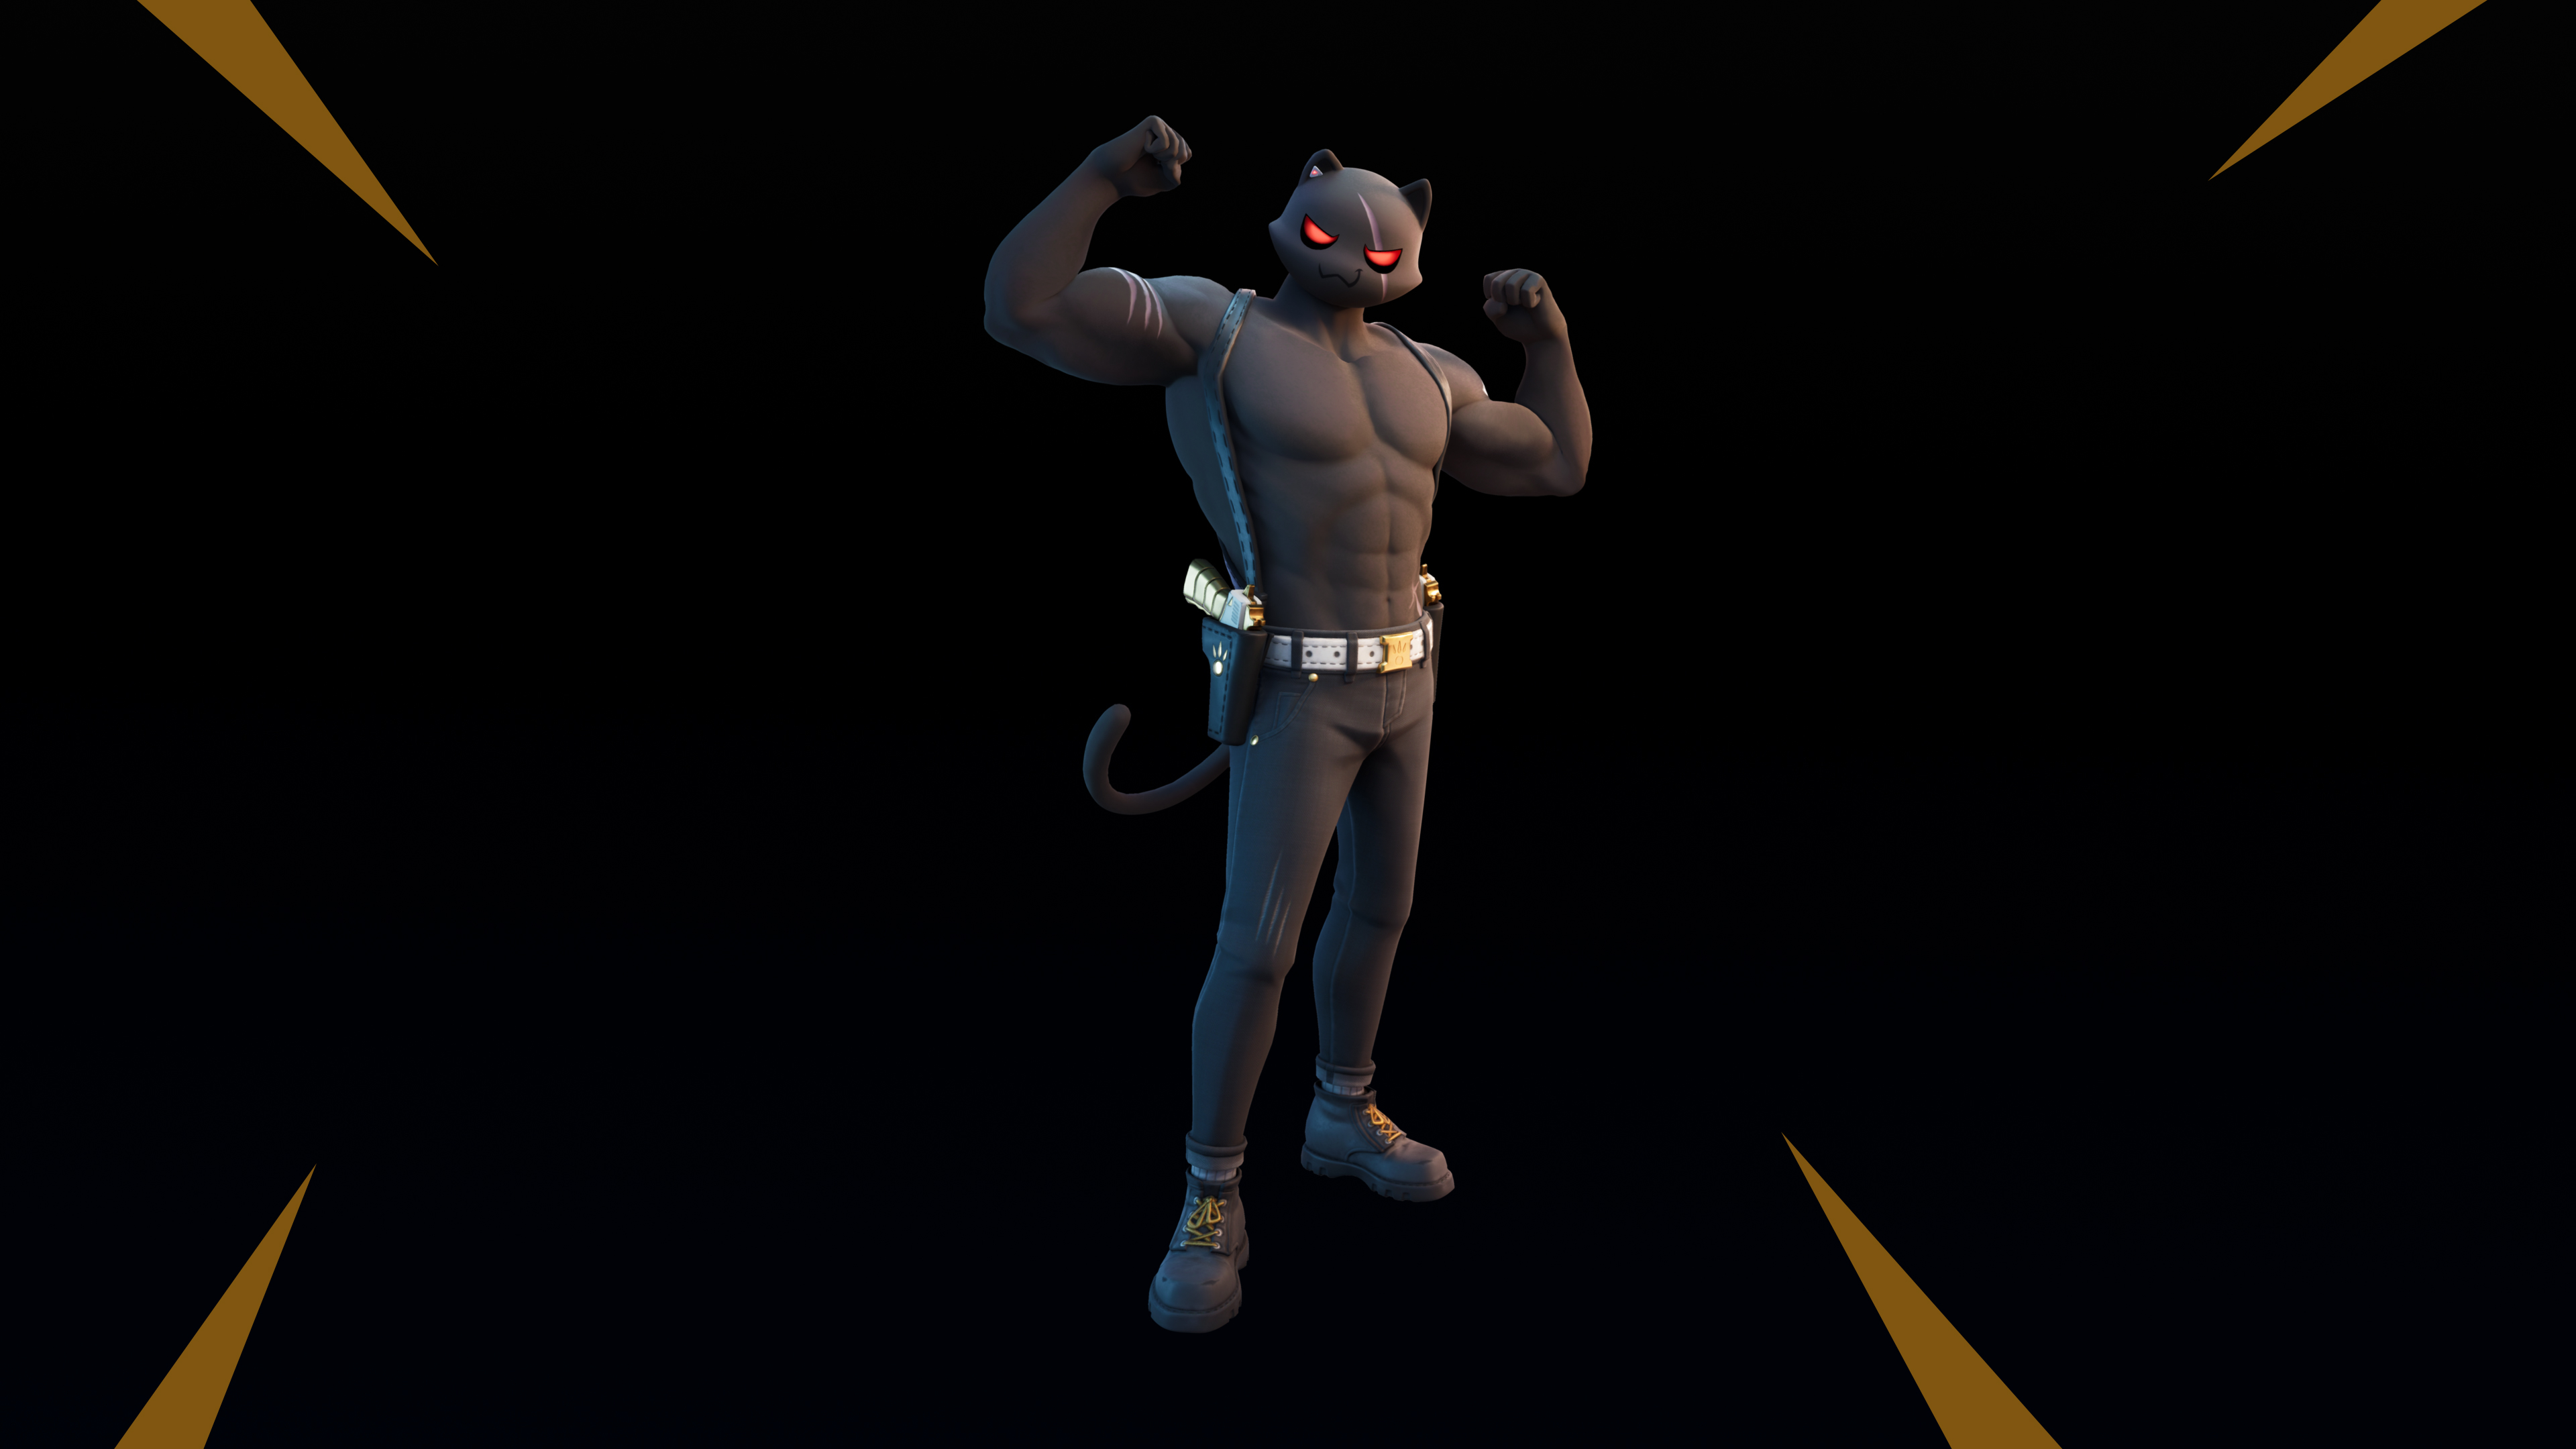 2560x1600 Meowscles Skin Fortnite Season 12 2560x1600 Resolution Wallpaper Hd Games 4k Wallpapers Images Photos And Background